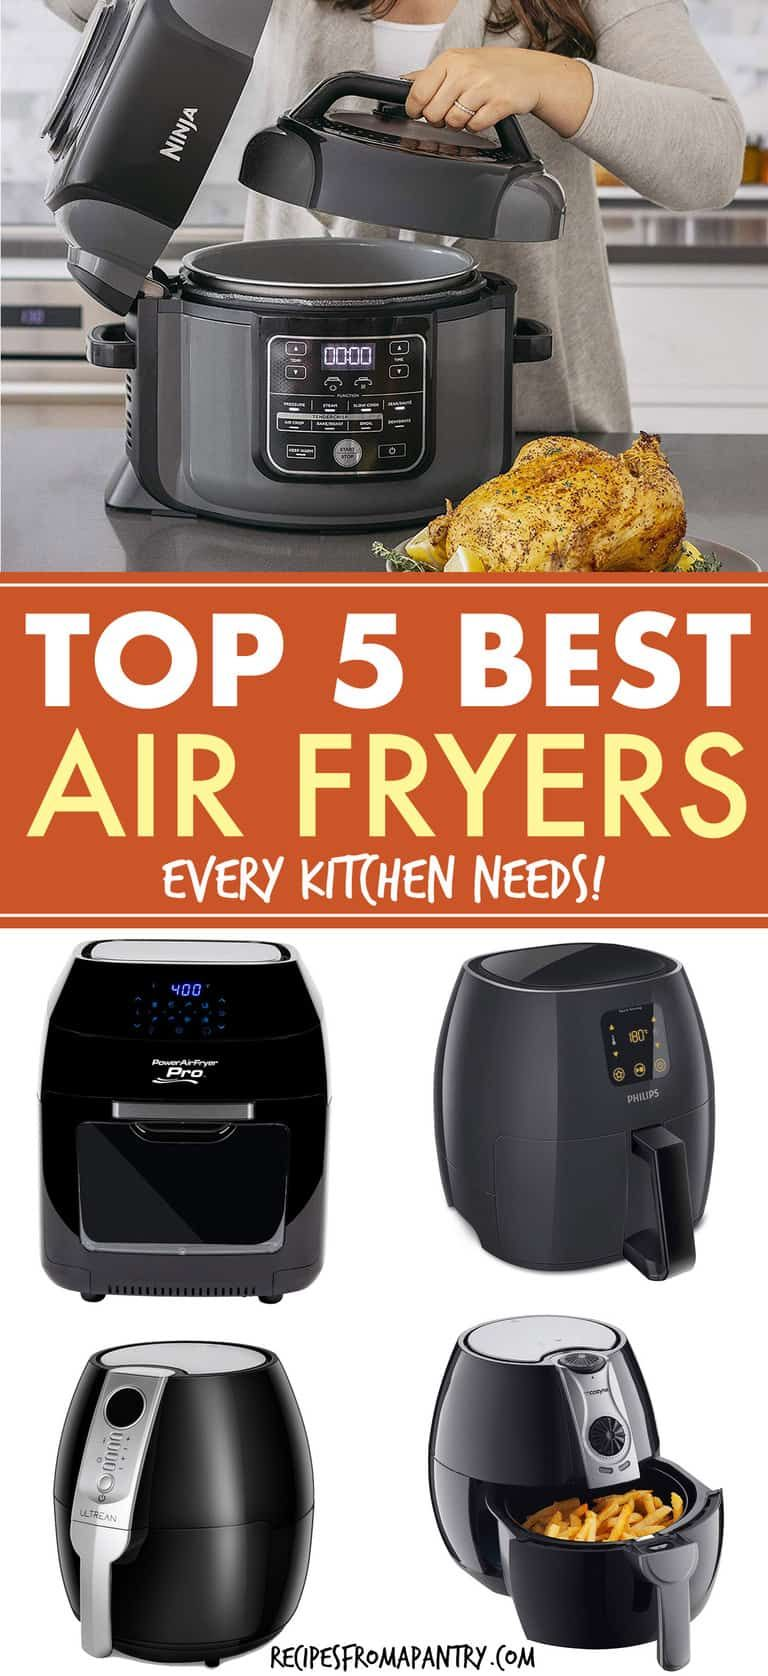 We have reviewed 5 top Air Fryers every kitchen needs. We show you everything you need to know when